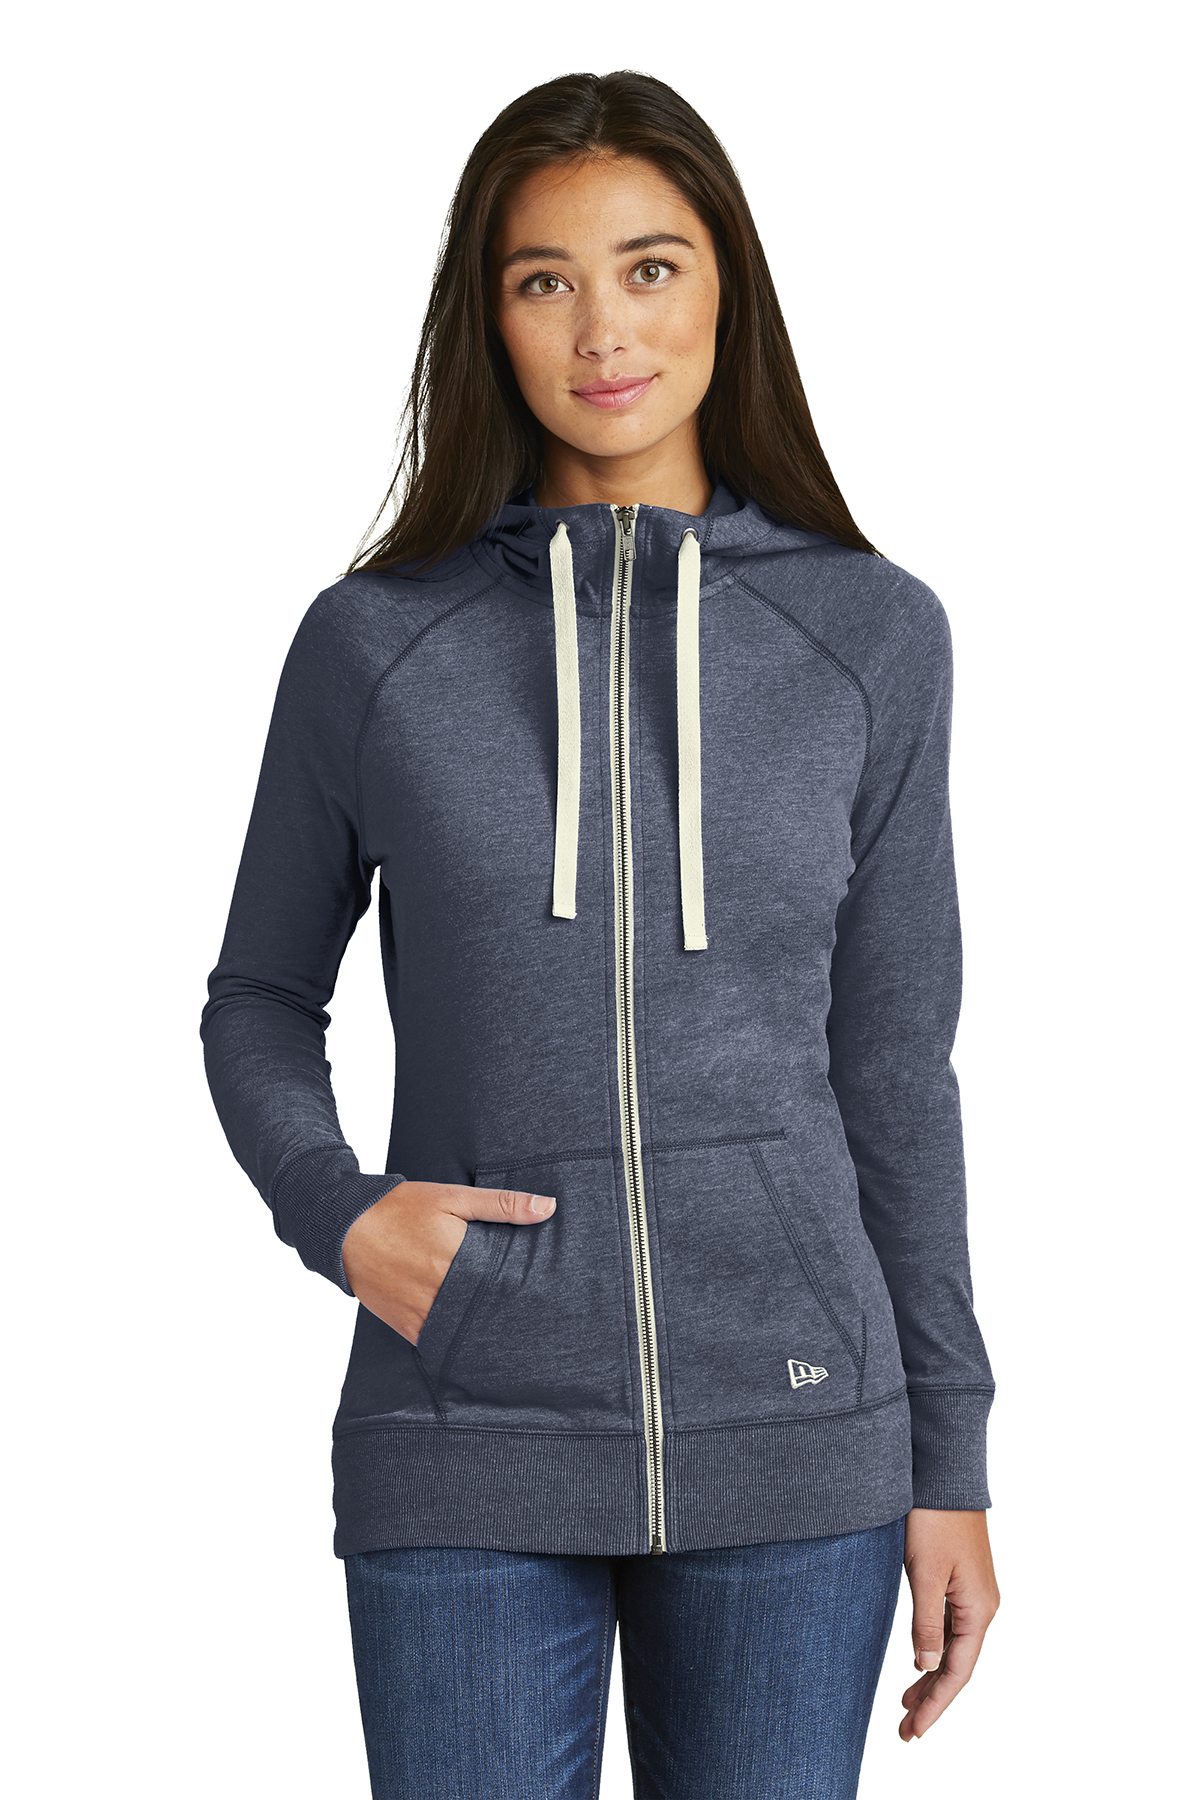 New Era LNEA122 - Ladies Sueded Cotton Full Zip Hoodie